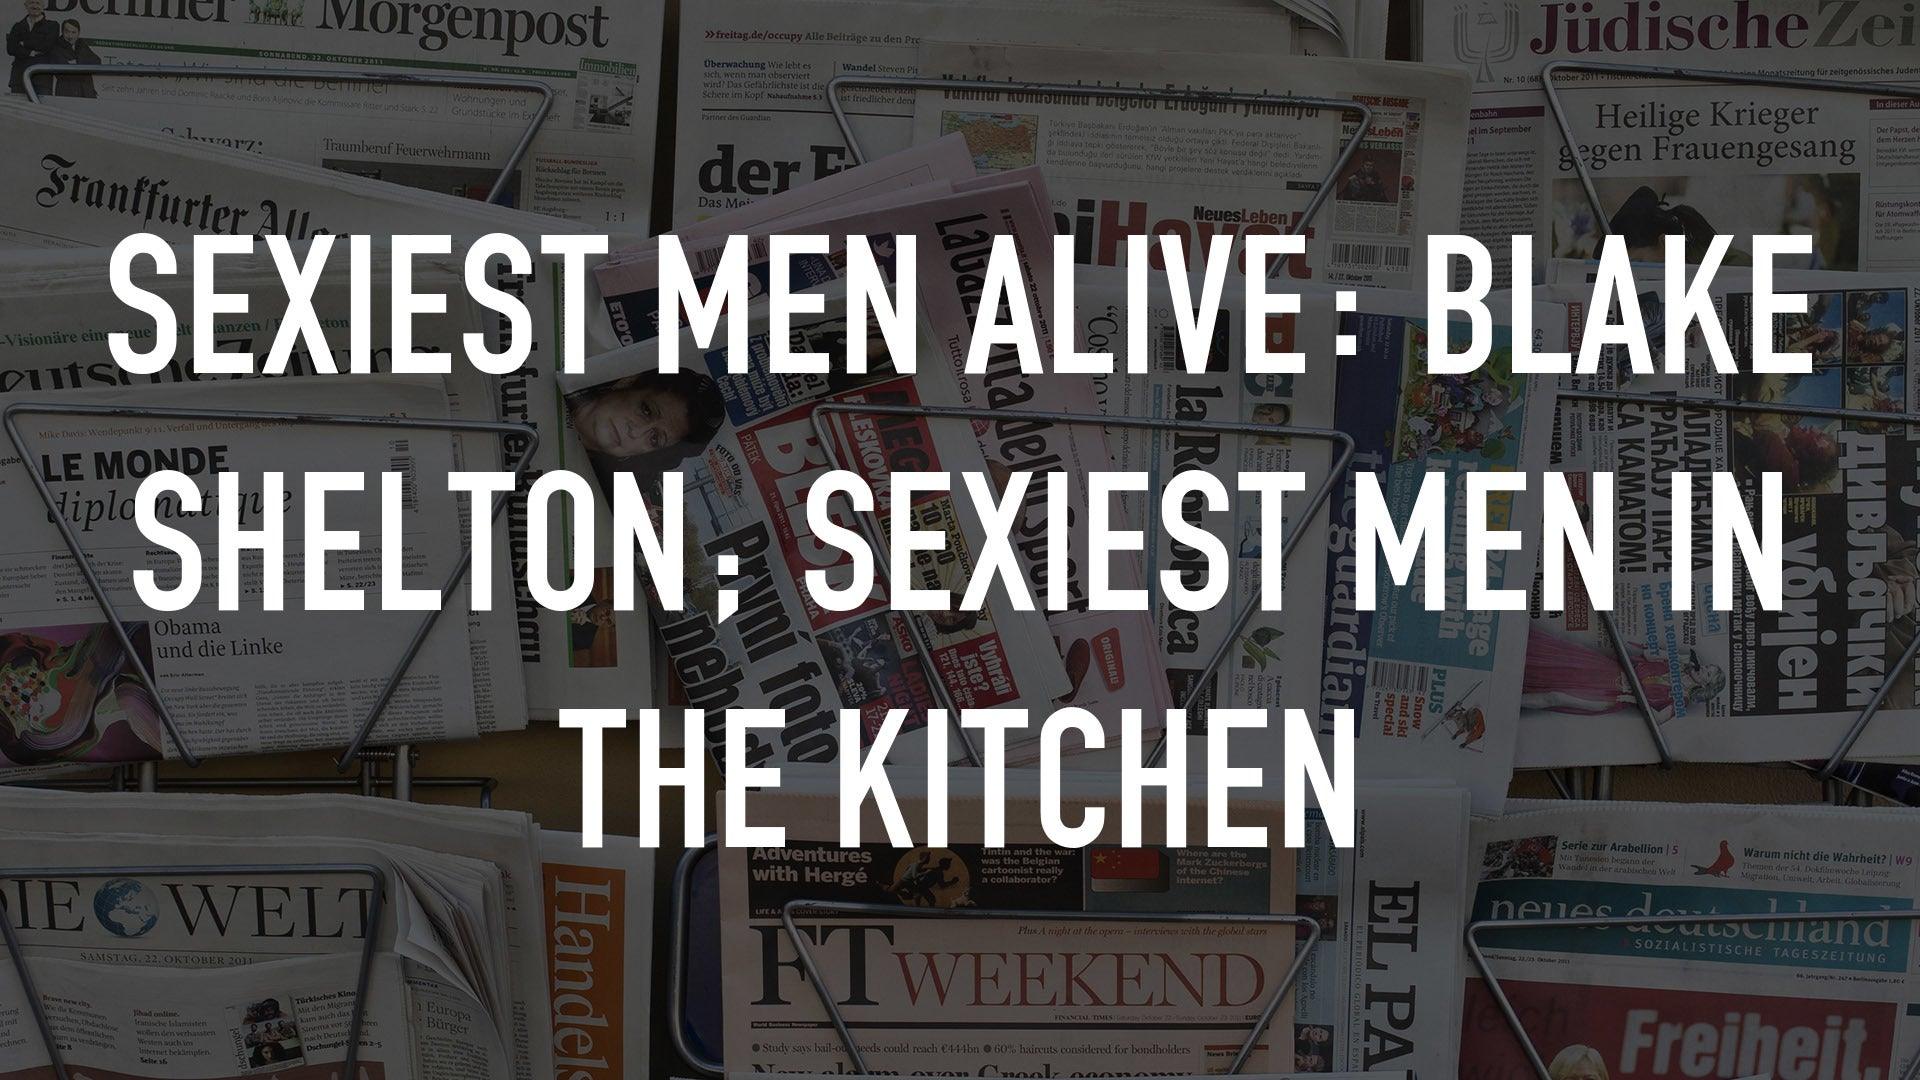 Sexiest Men Alive: Blake Shelton; Sexiest Men in the Kitchen